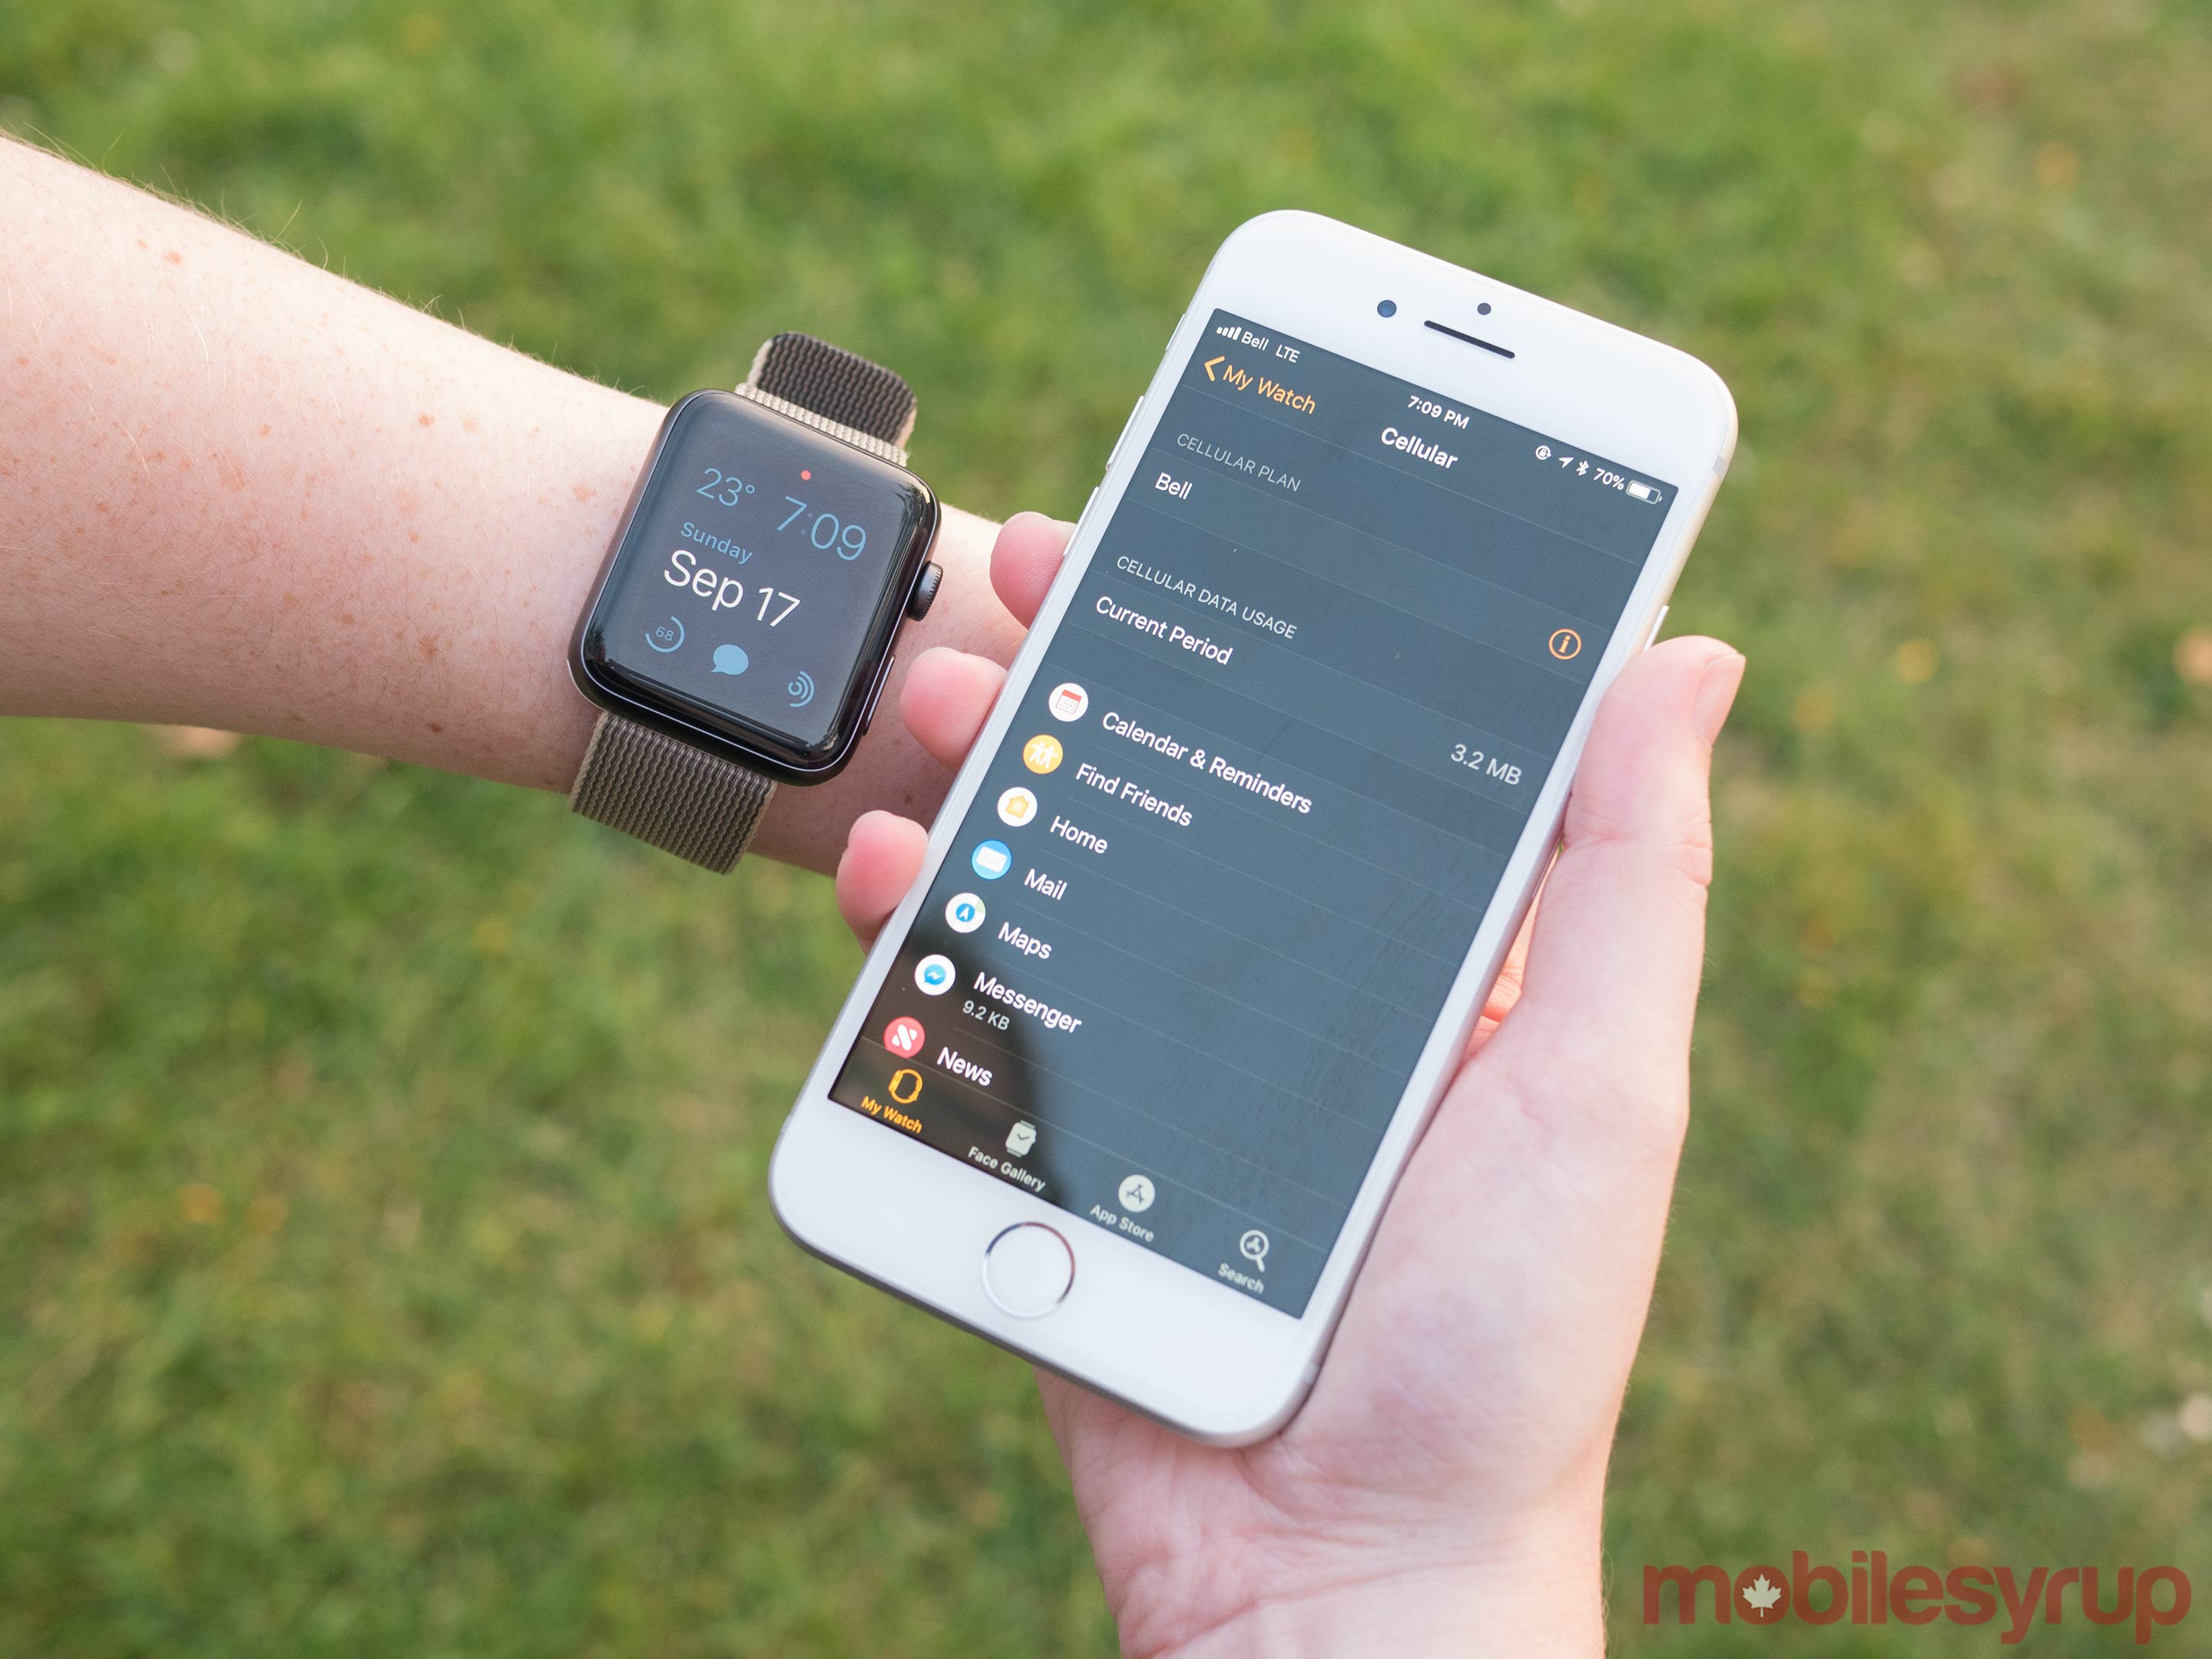 watch series cnet phone living apple watches video as videos the off cellular